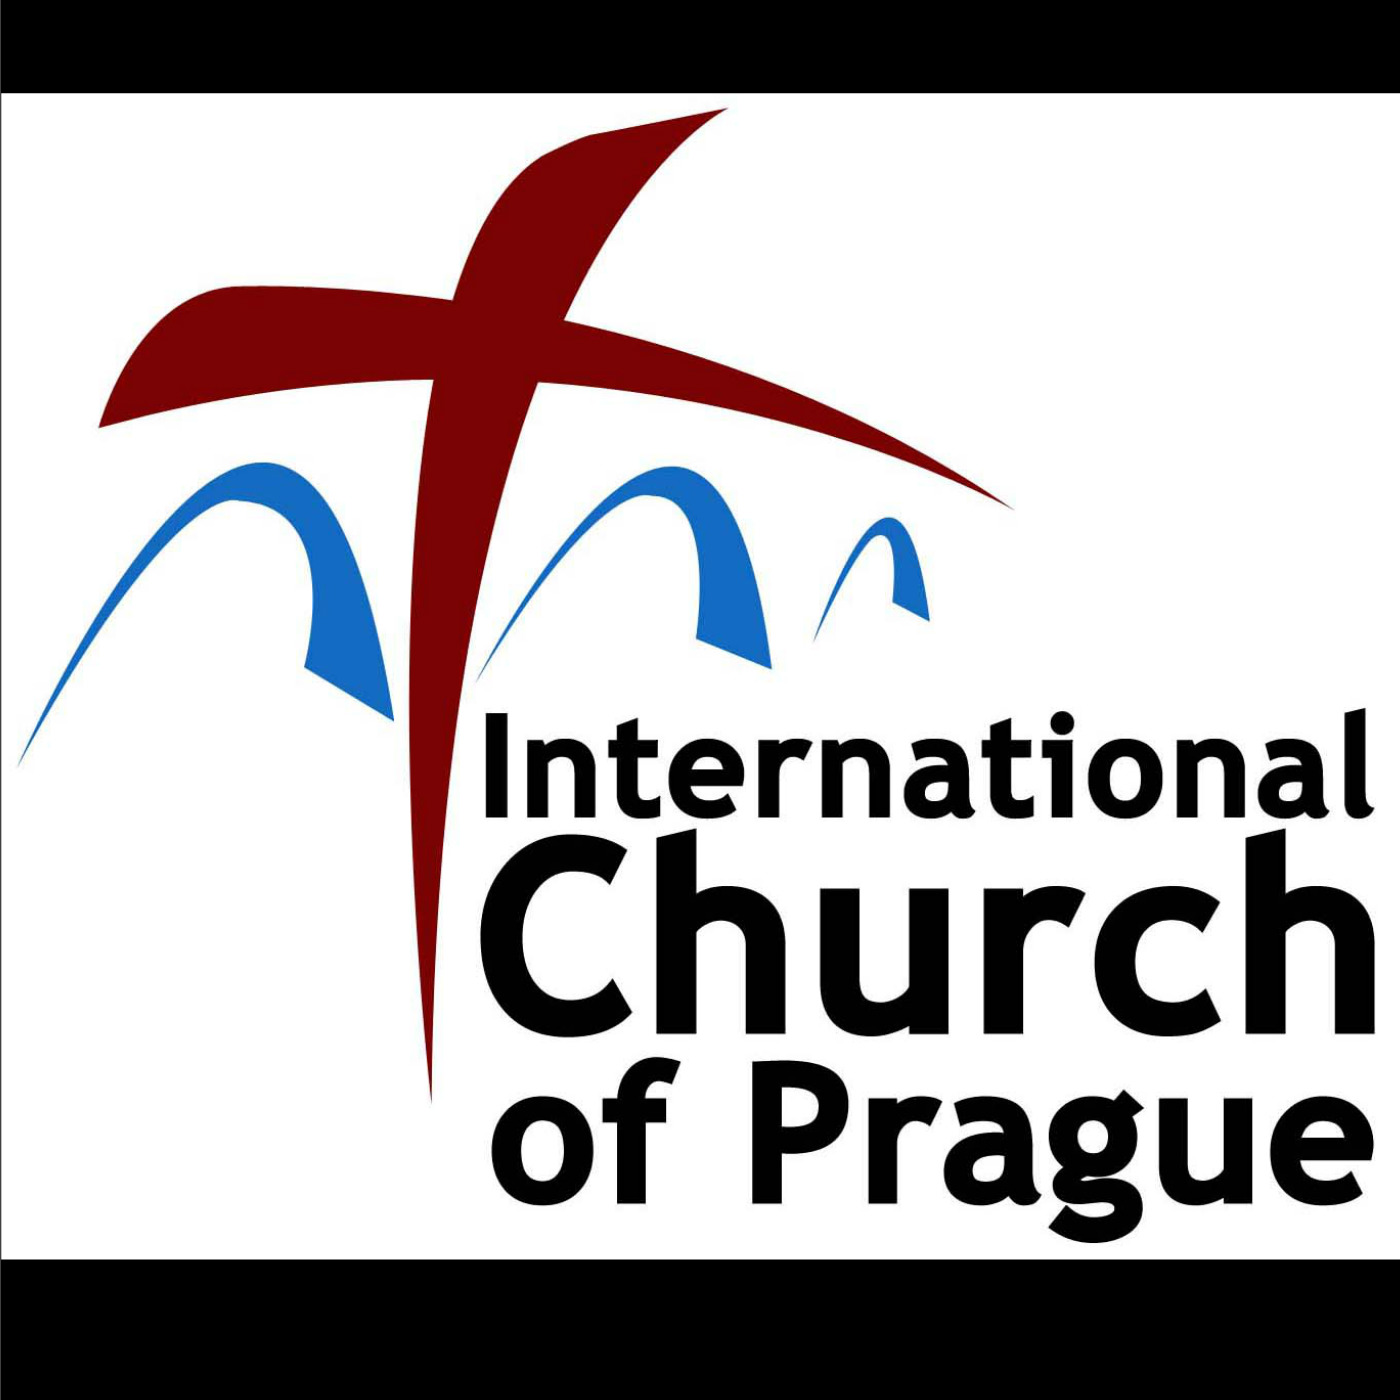 International Church of Prague